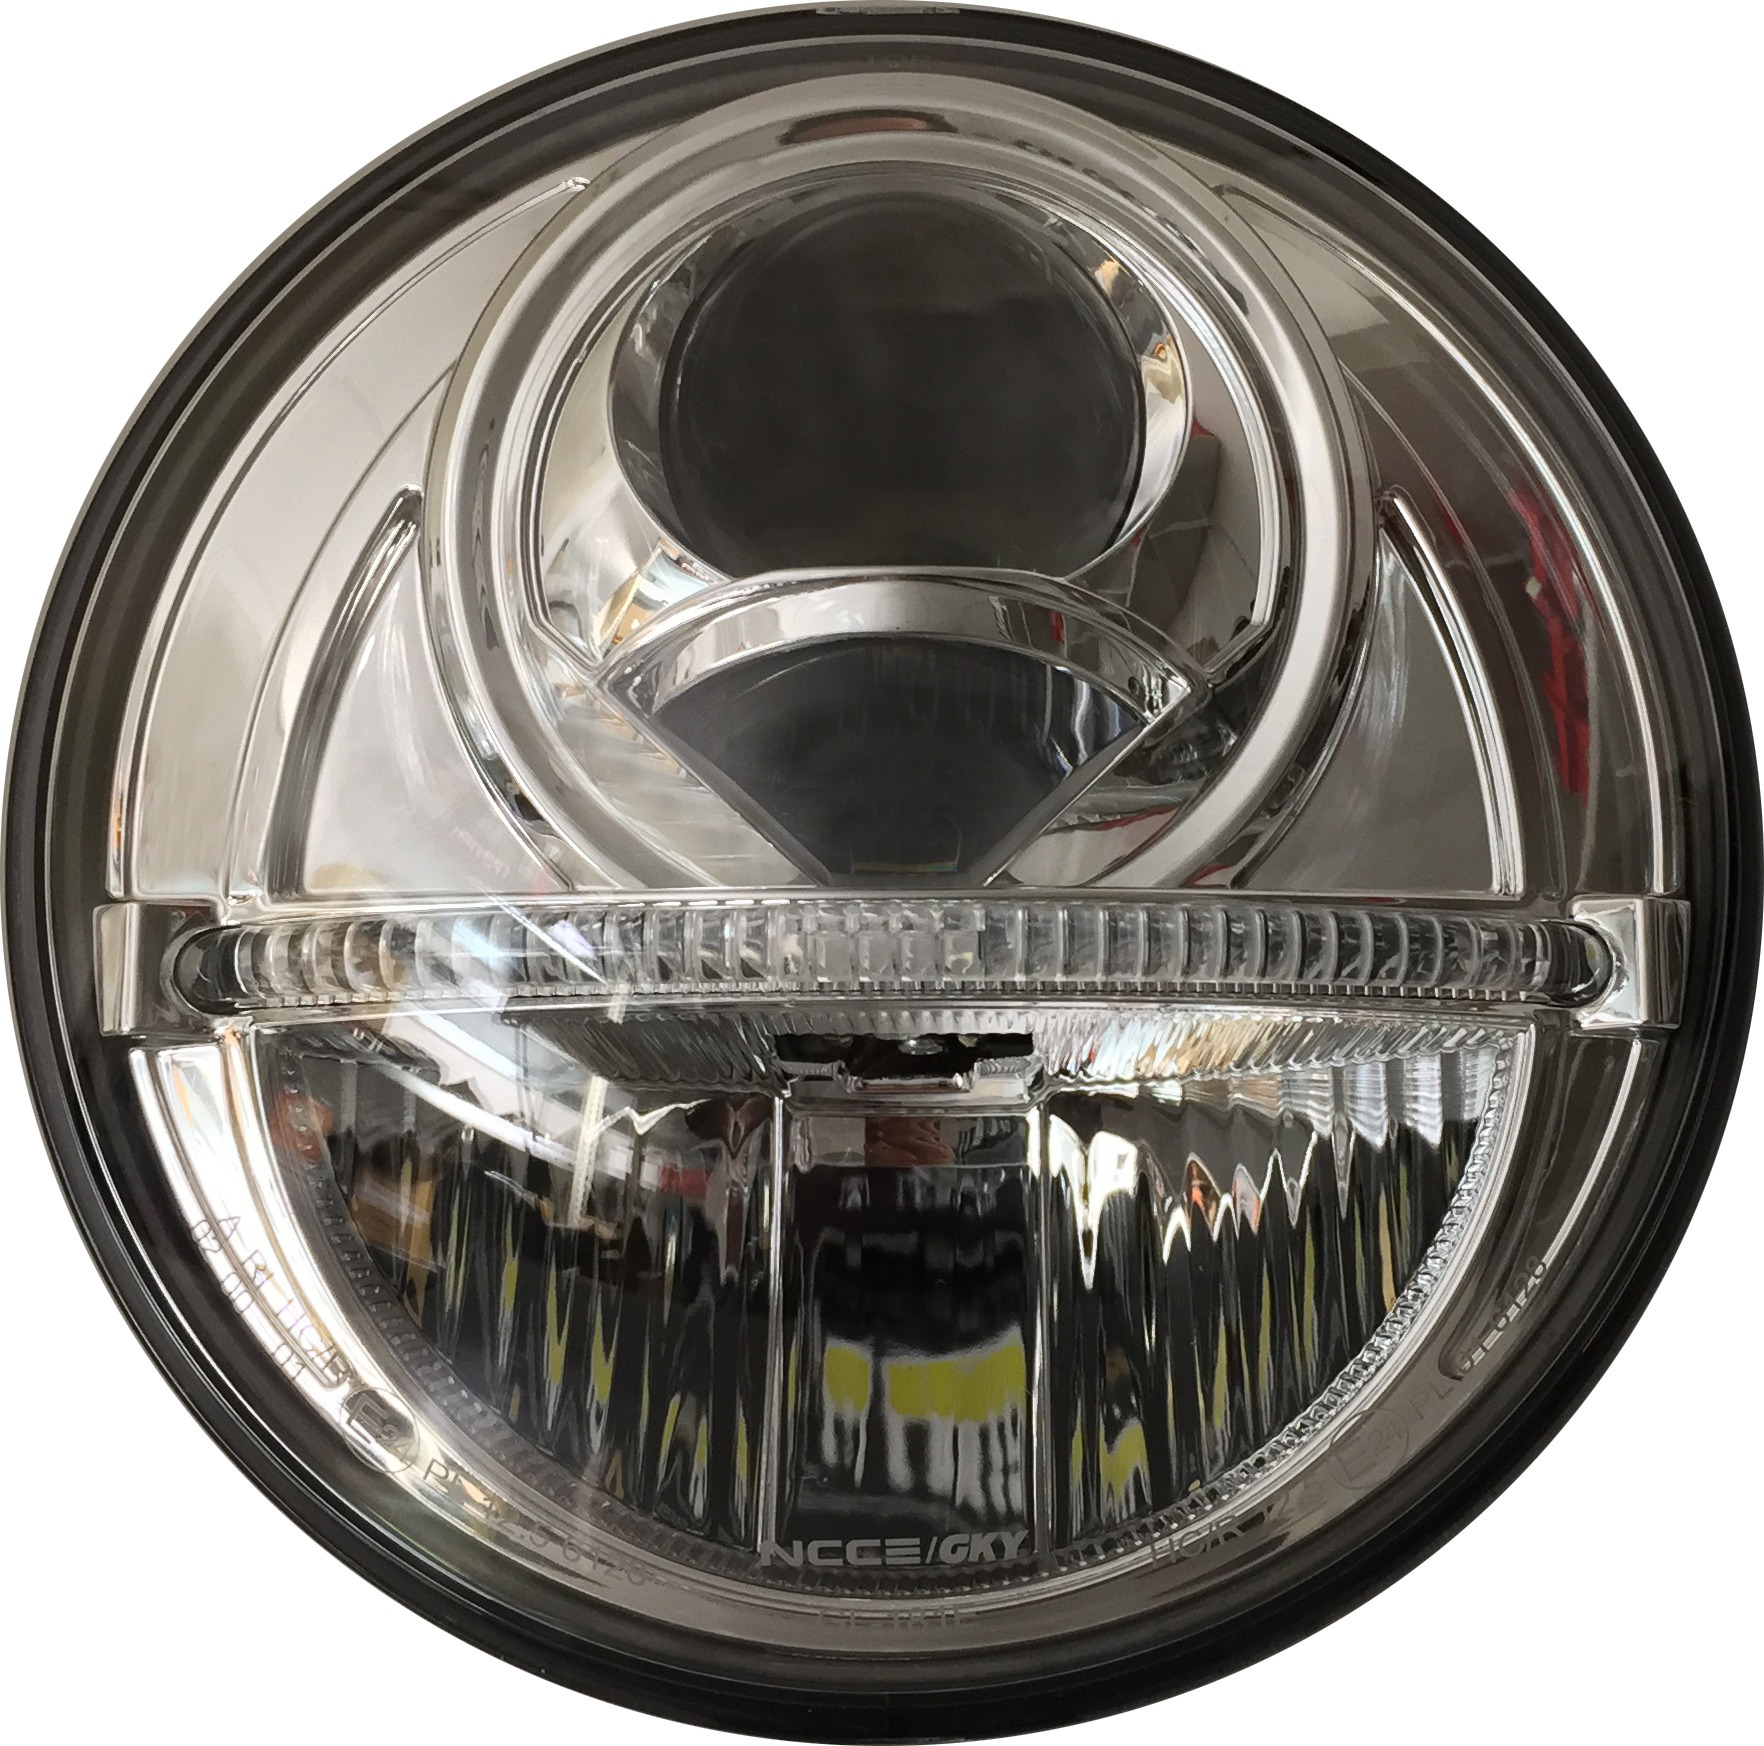 Nolden LED headlights Generation 2 with